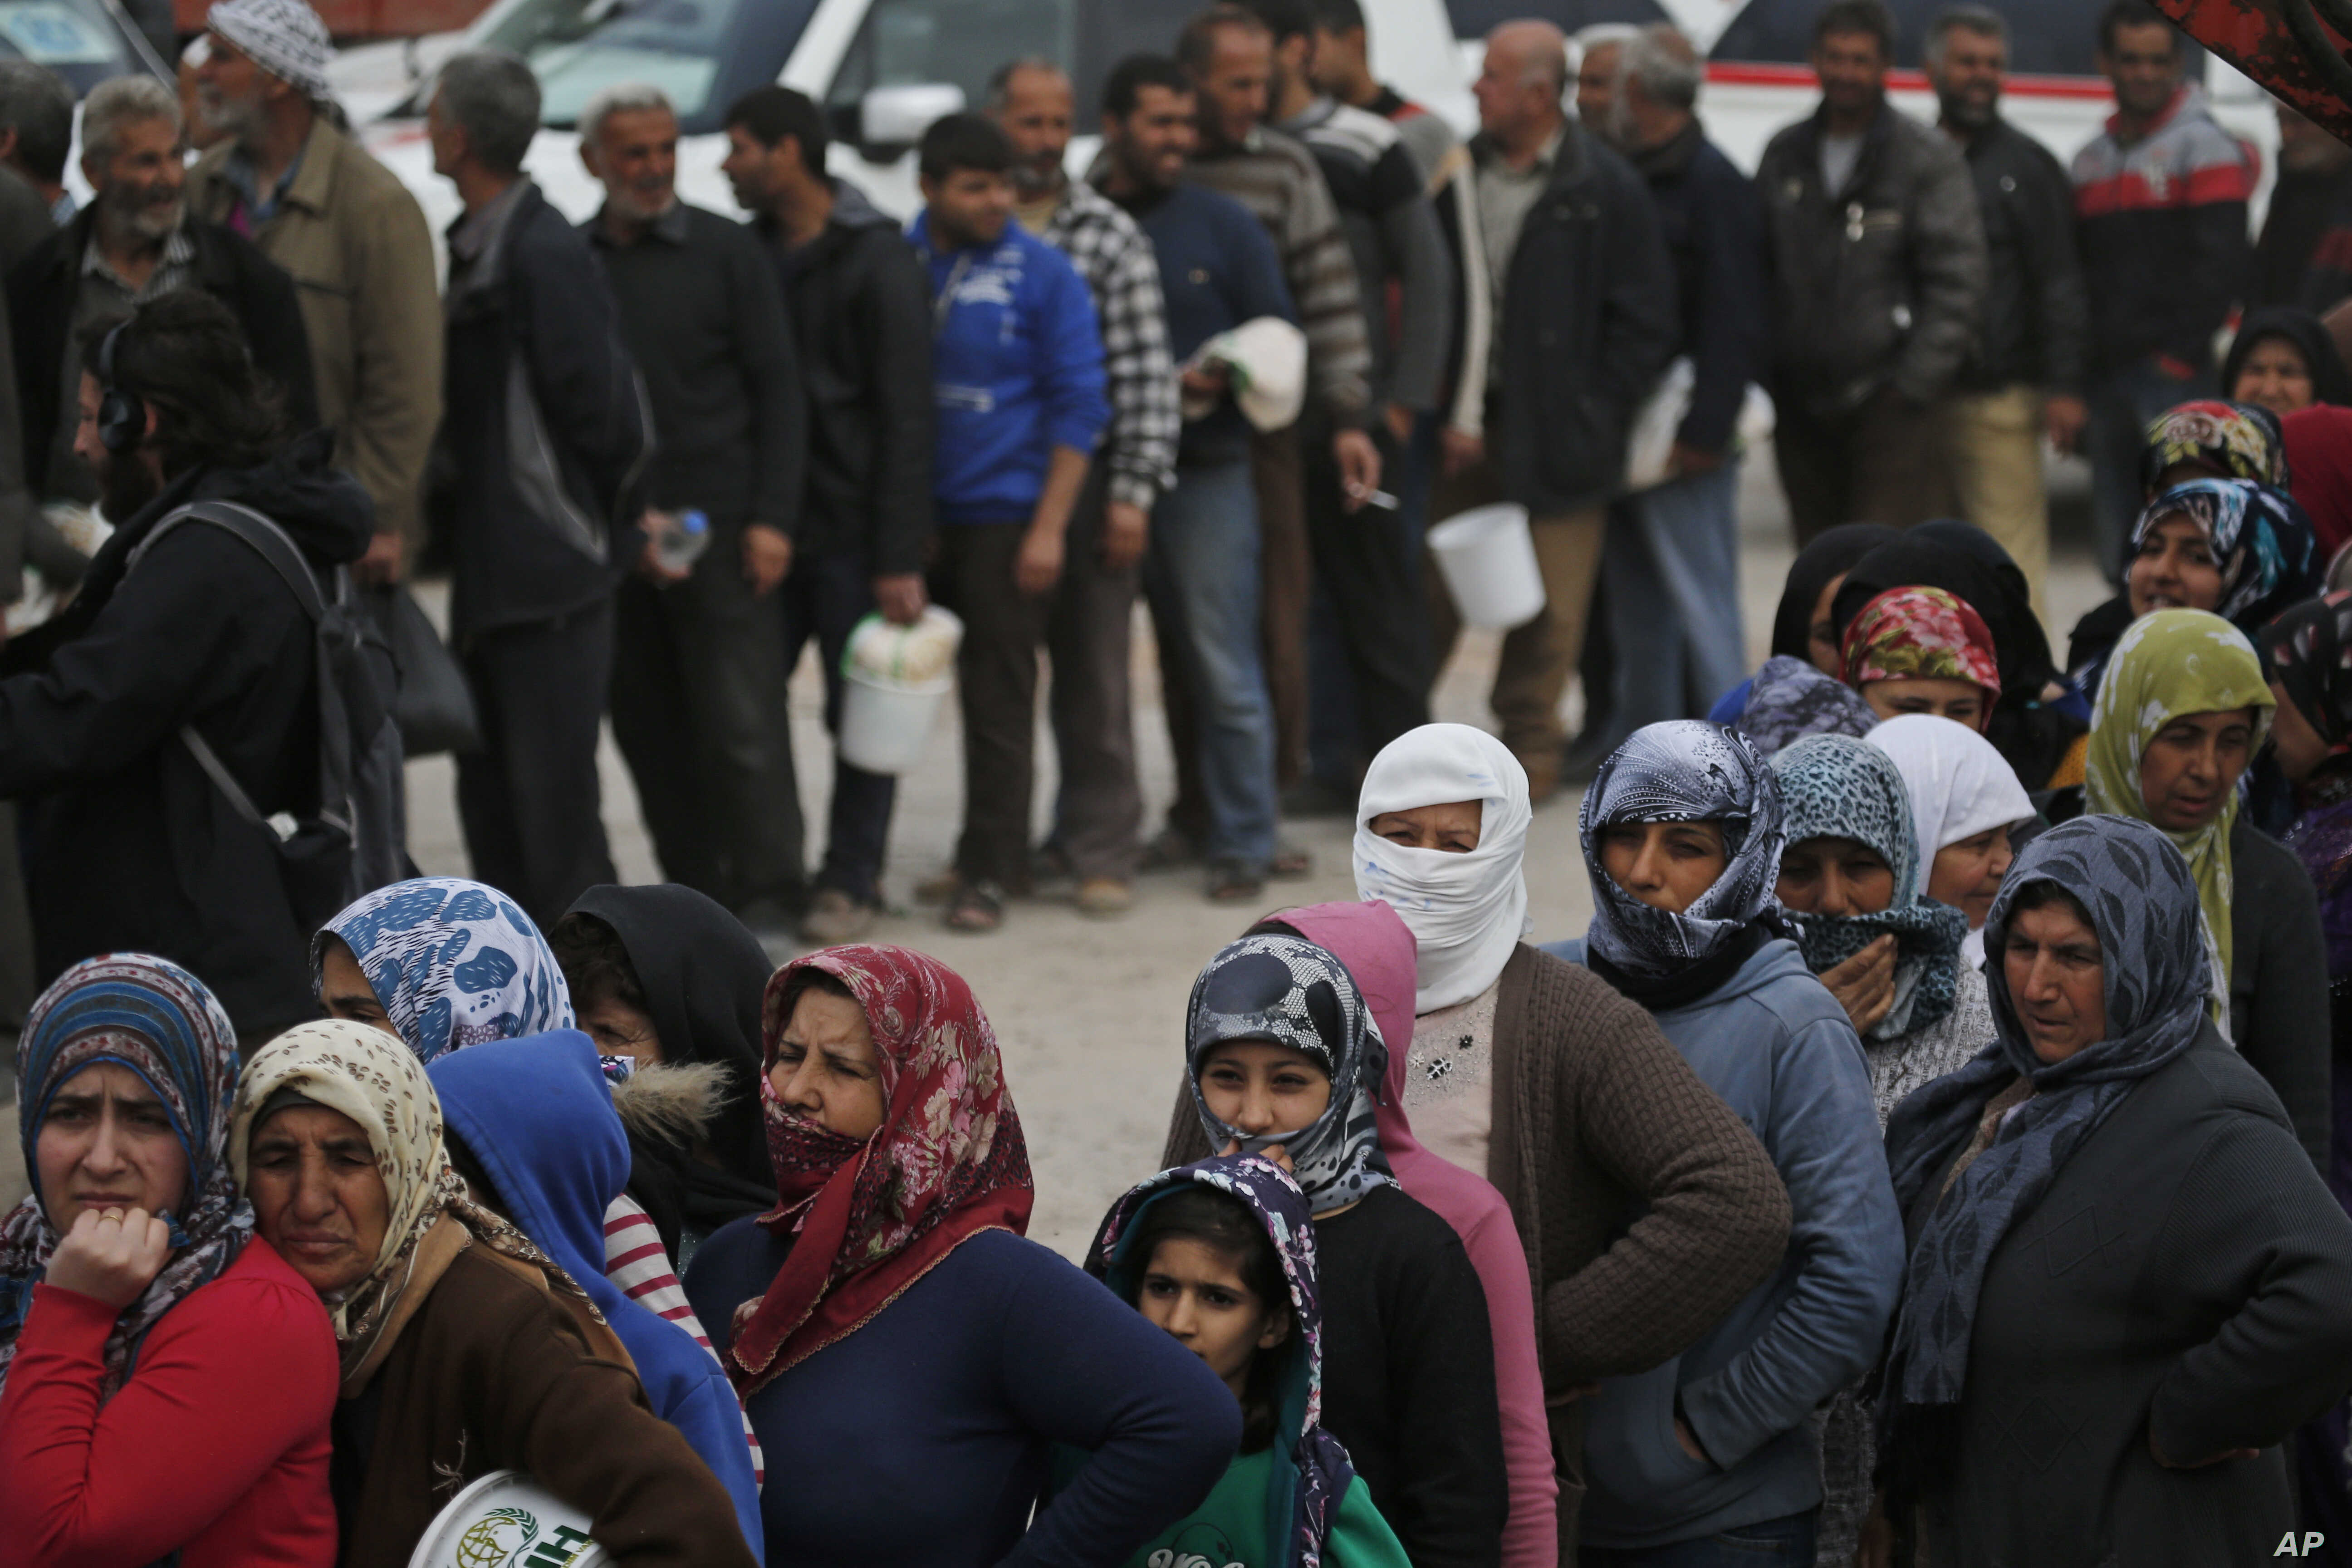 Syrians line up for food at a distribution center in the northwestern city of Afrin, Syria, during a Turkish government-organized media tour into northern Syria, March 24, 2018.